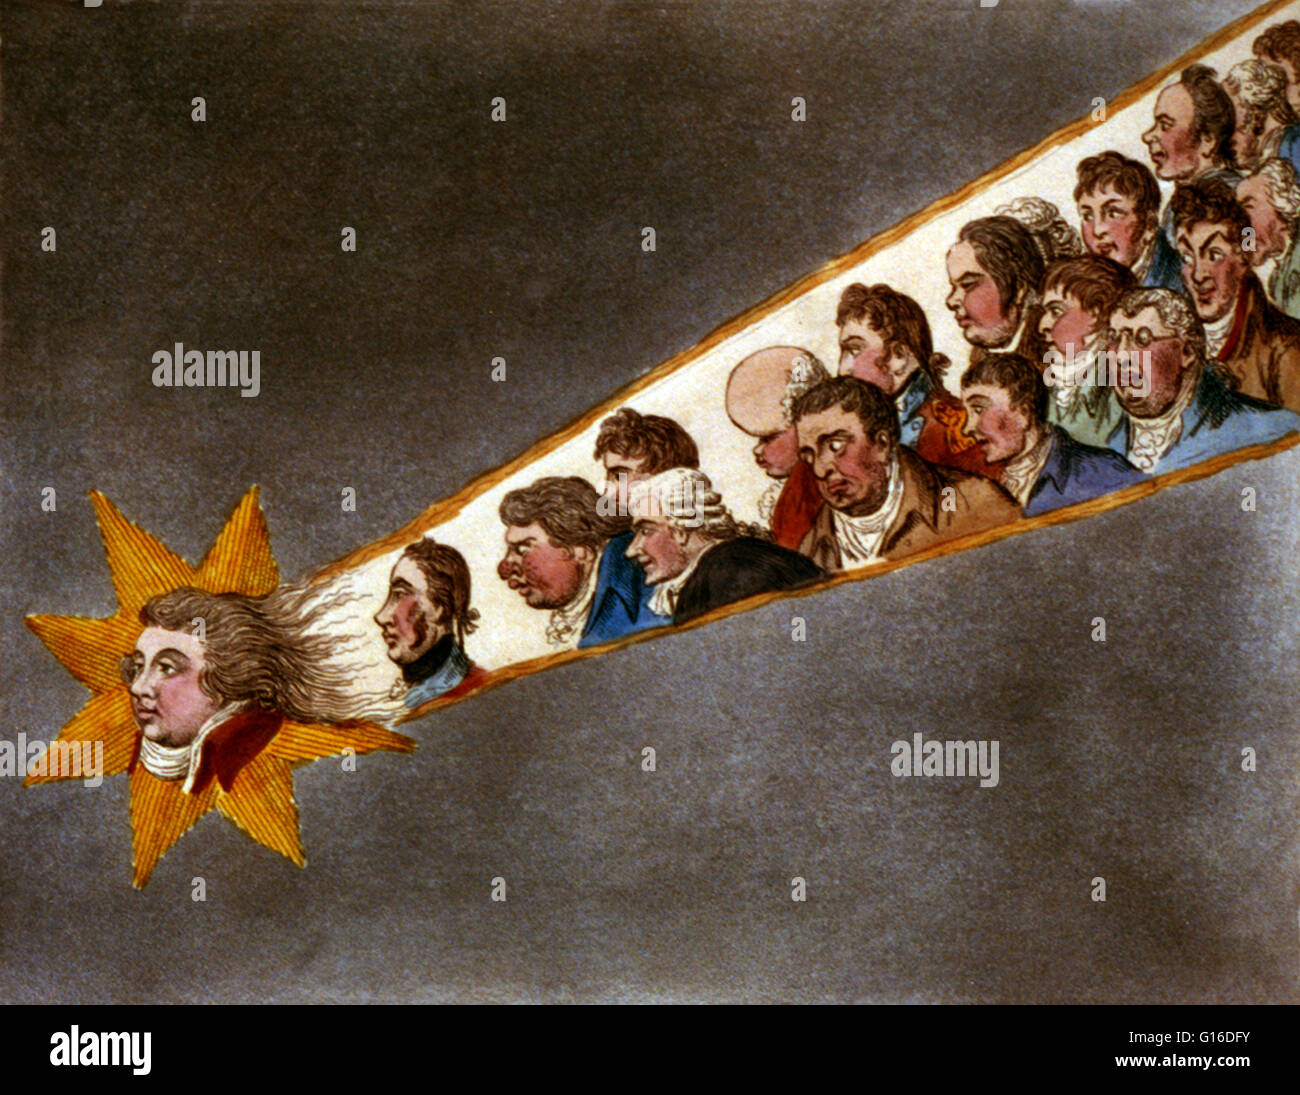 Entitled: 'The comet of 1811' The head of the Prince of Wales in the head of a comet. In the comet's - Stock Image